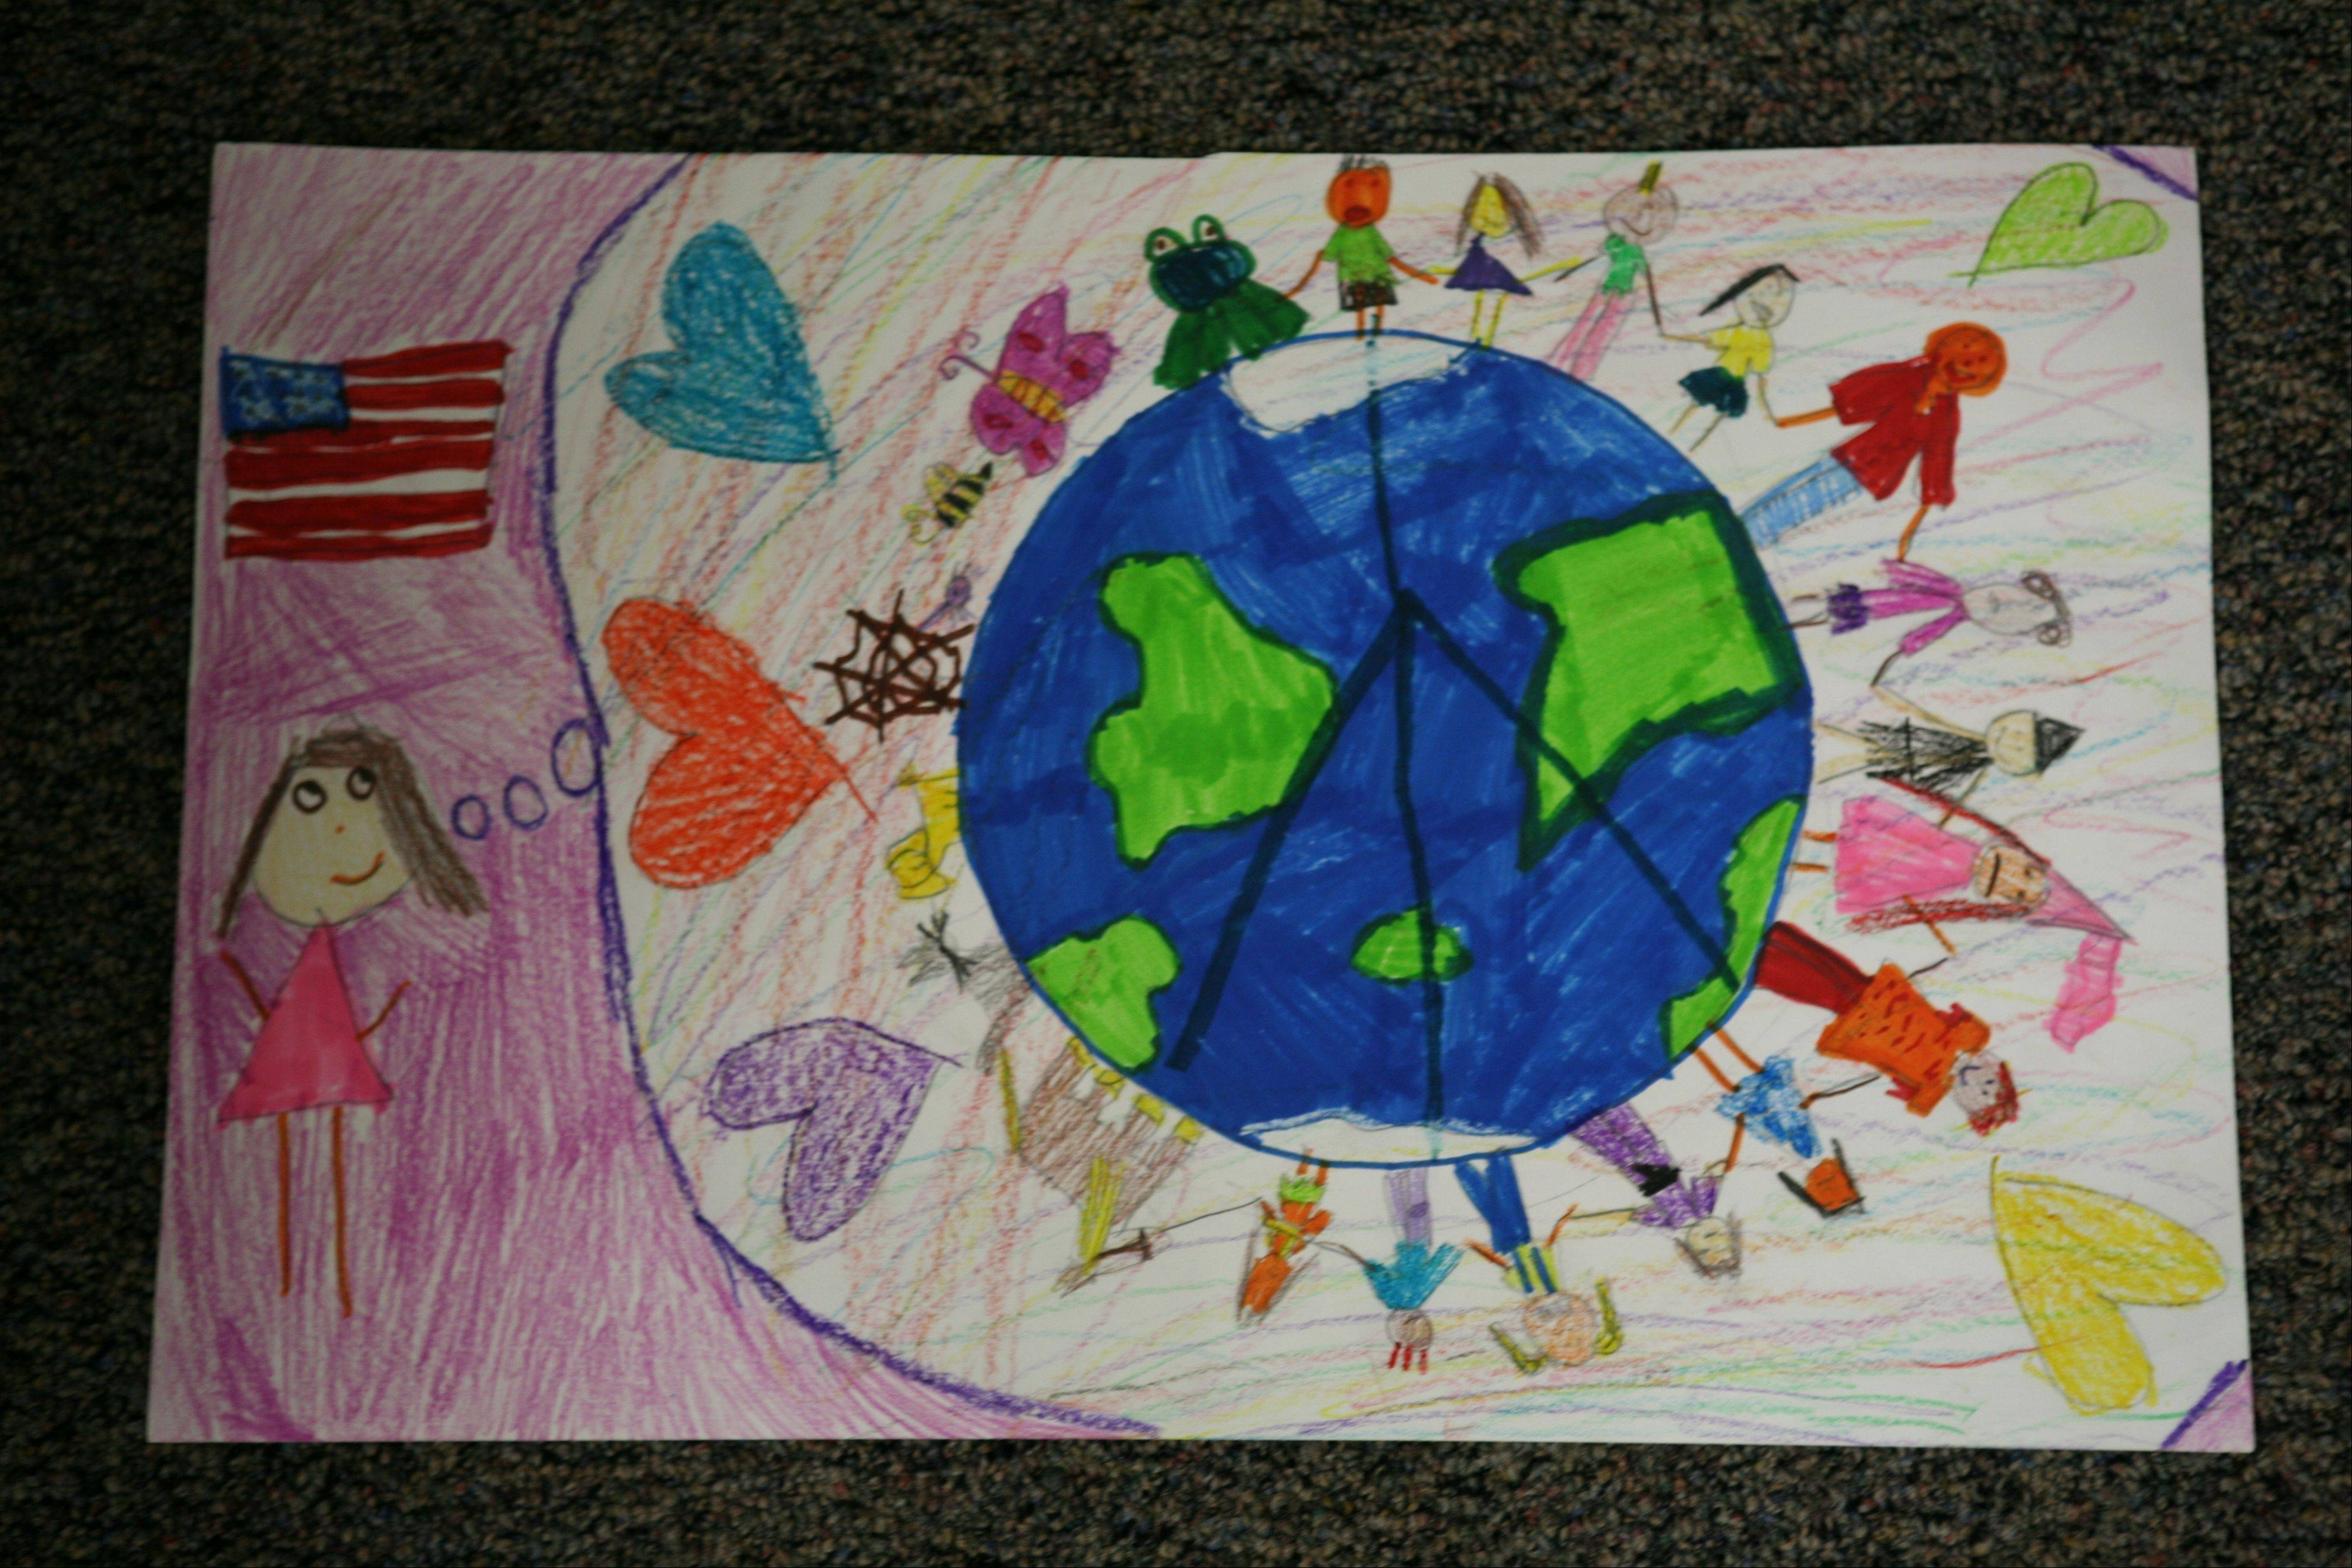 Olivia Cichowals' winning poster in the Elk Grove Village Lions International Peace Poster Contest.